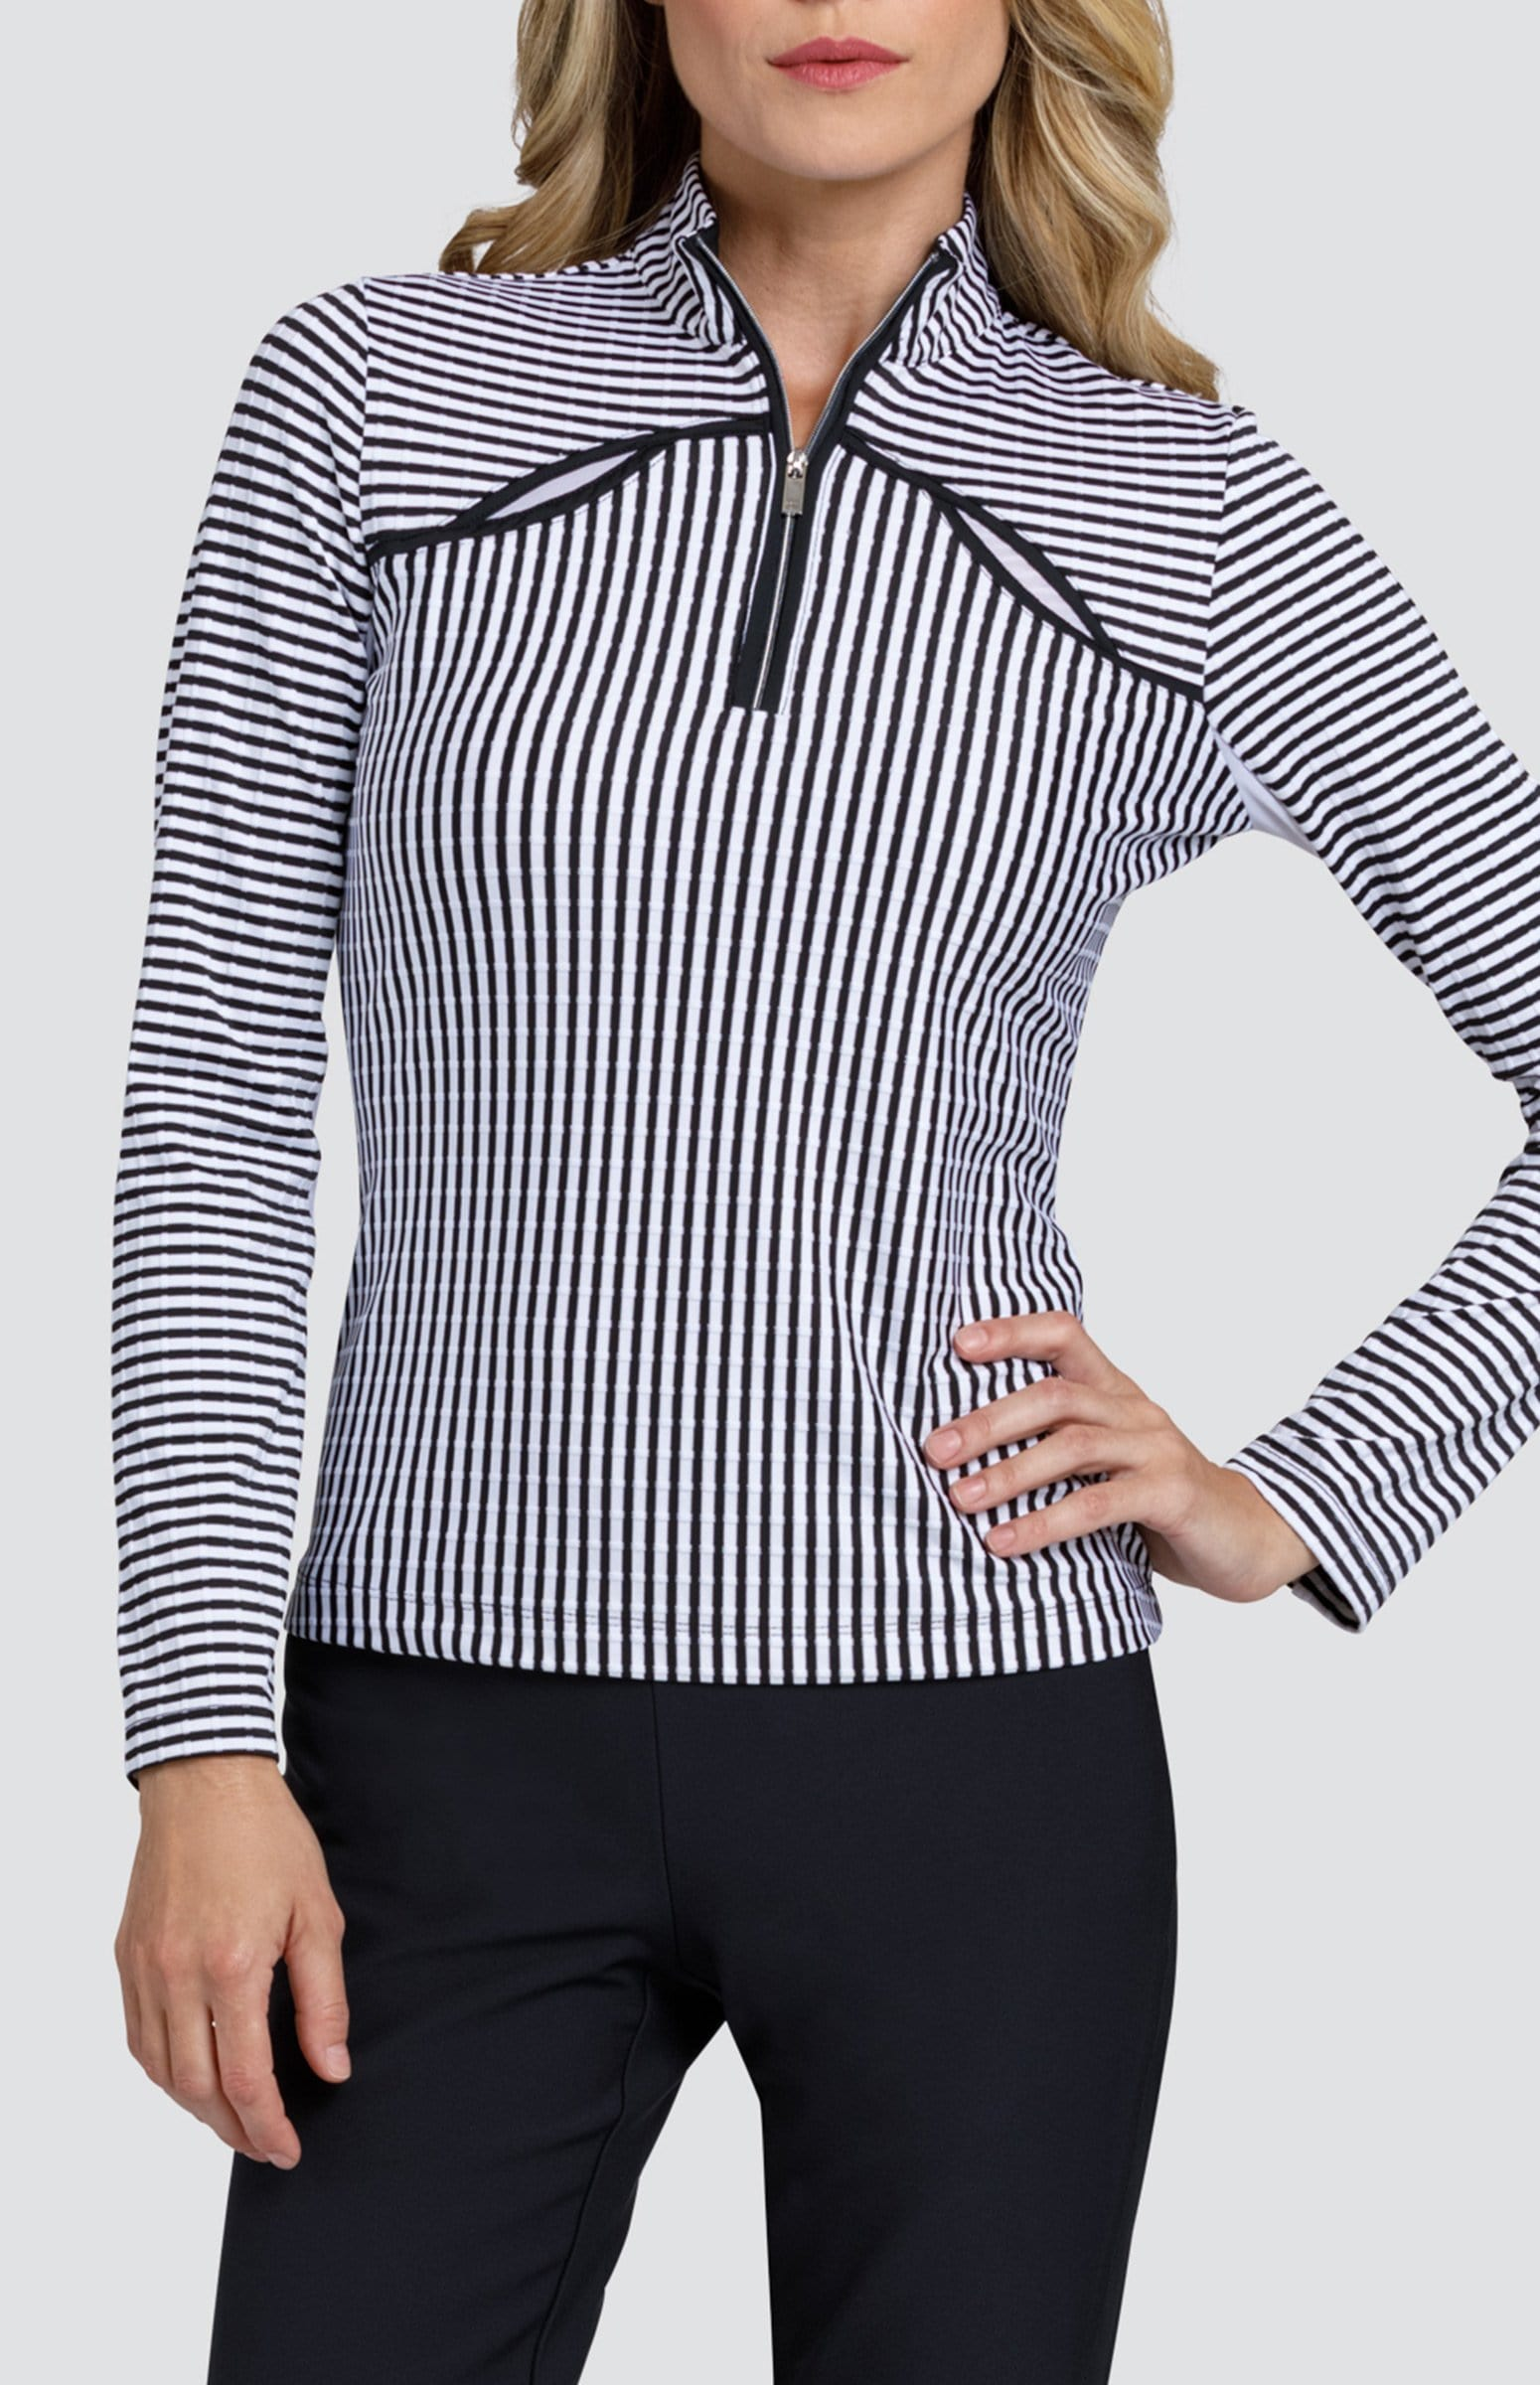 Galilea Top - Stripe Jacquard